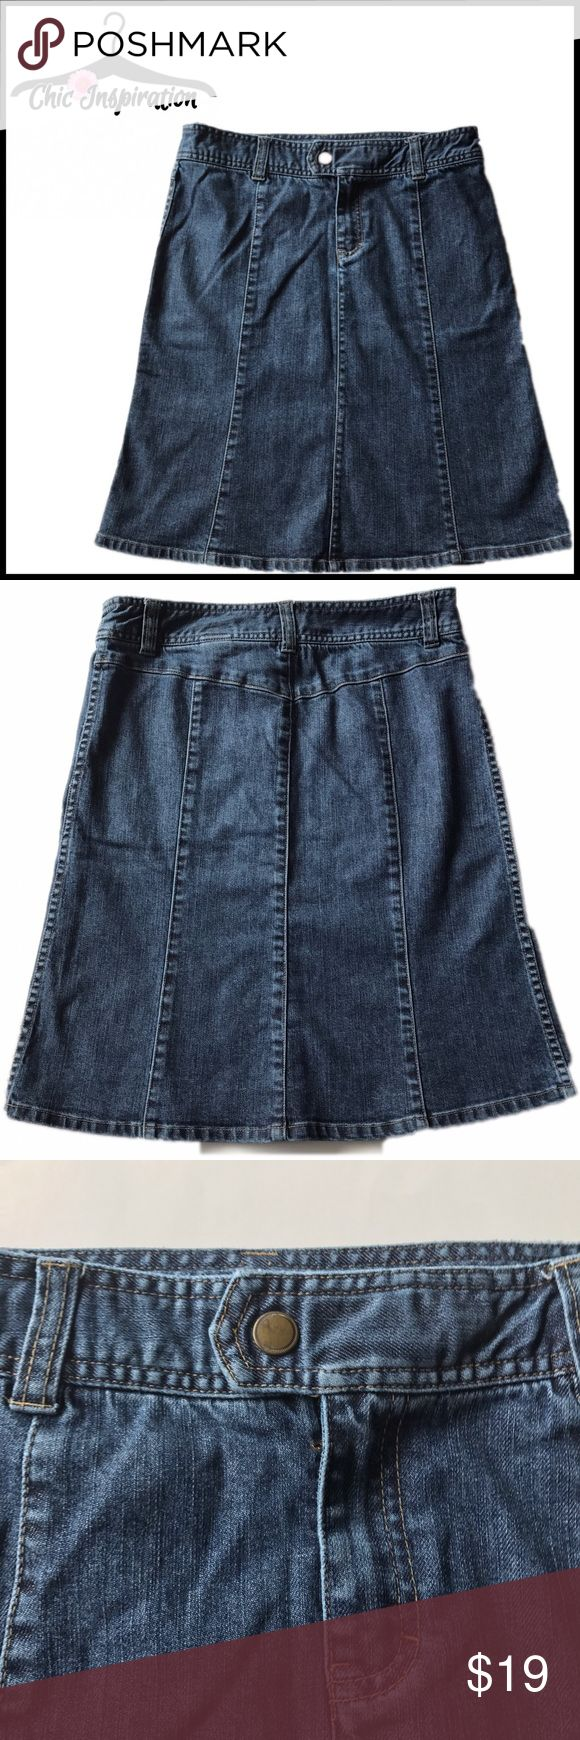 H&M Jean Skirt 99% cotton. Front button and zipper. See wear at the waist on the hem in the photos. H&M Skirts A-Line or Full